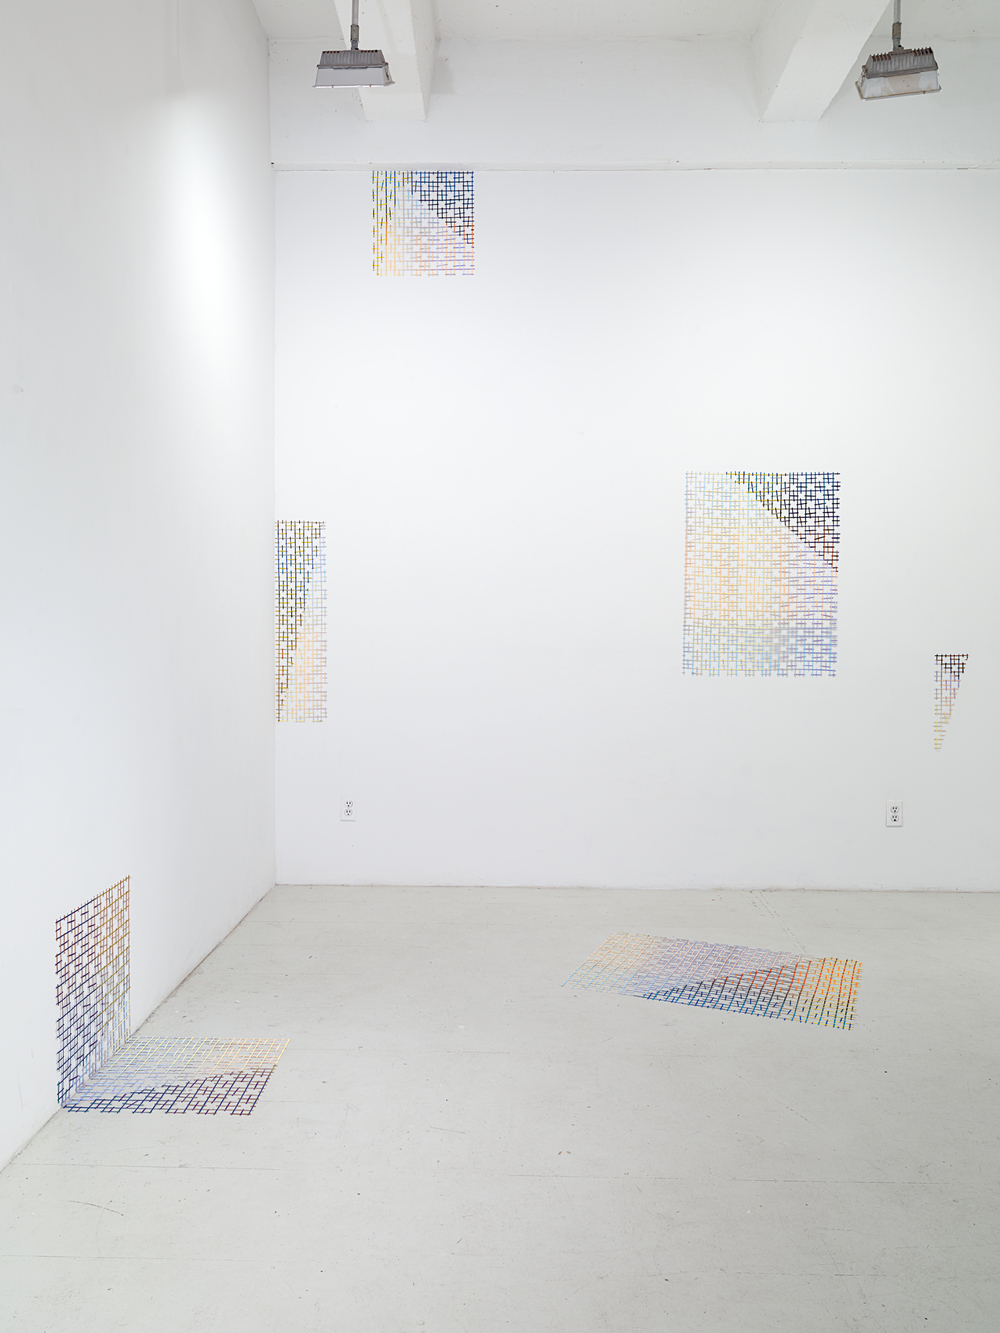 CUT LIGHT / OPEN LATE Installation view